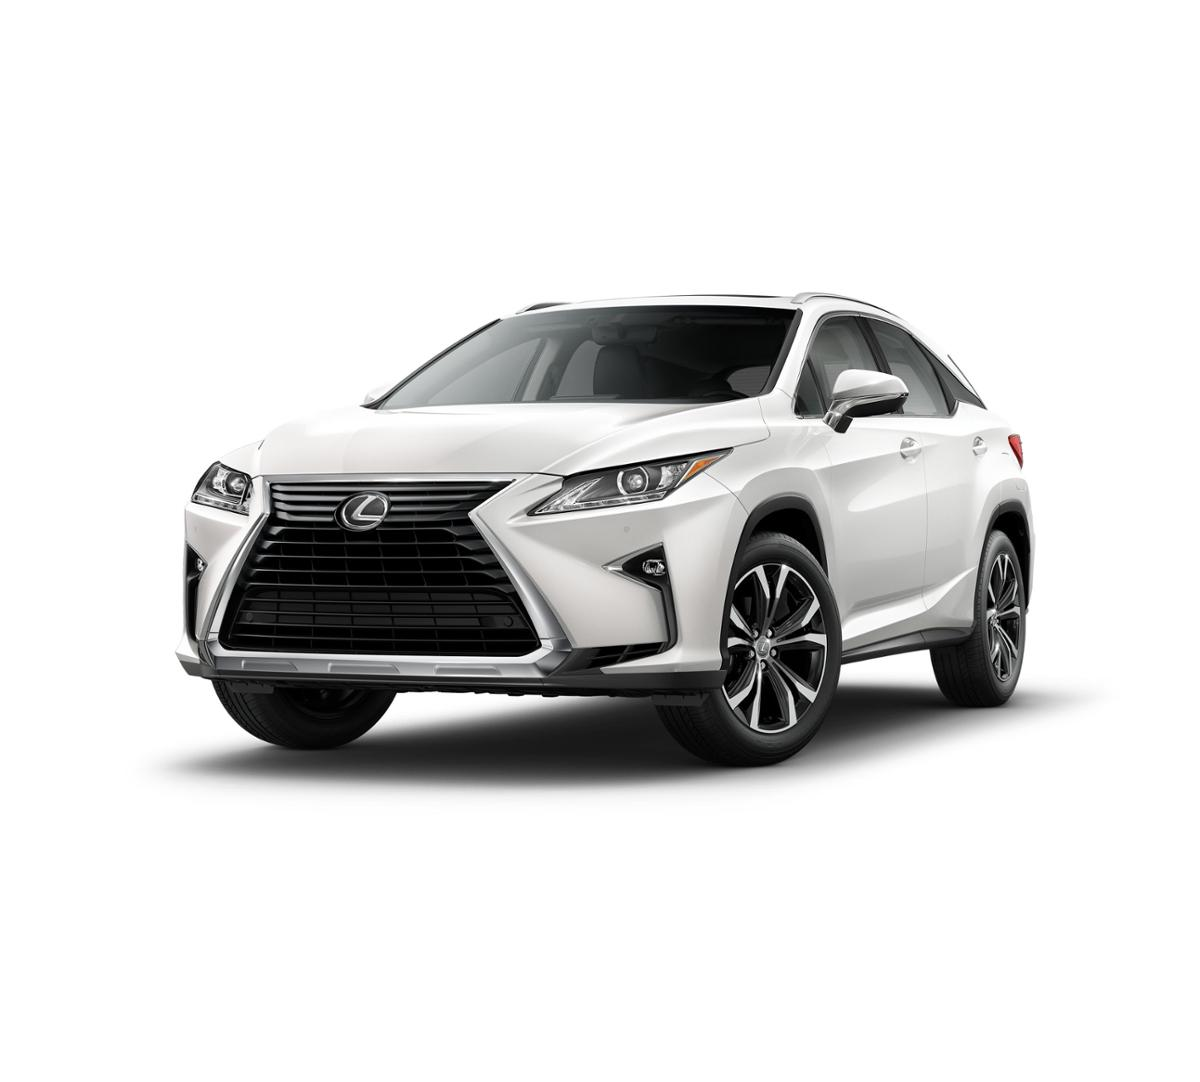 2017 Lexus RX 350 Vehicle Photo in Dallas, TX 75209